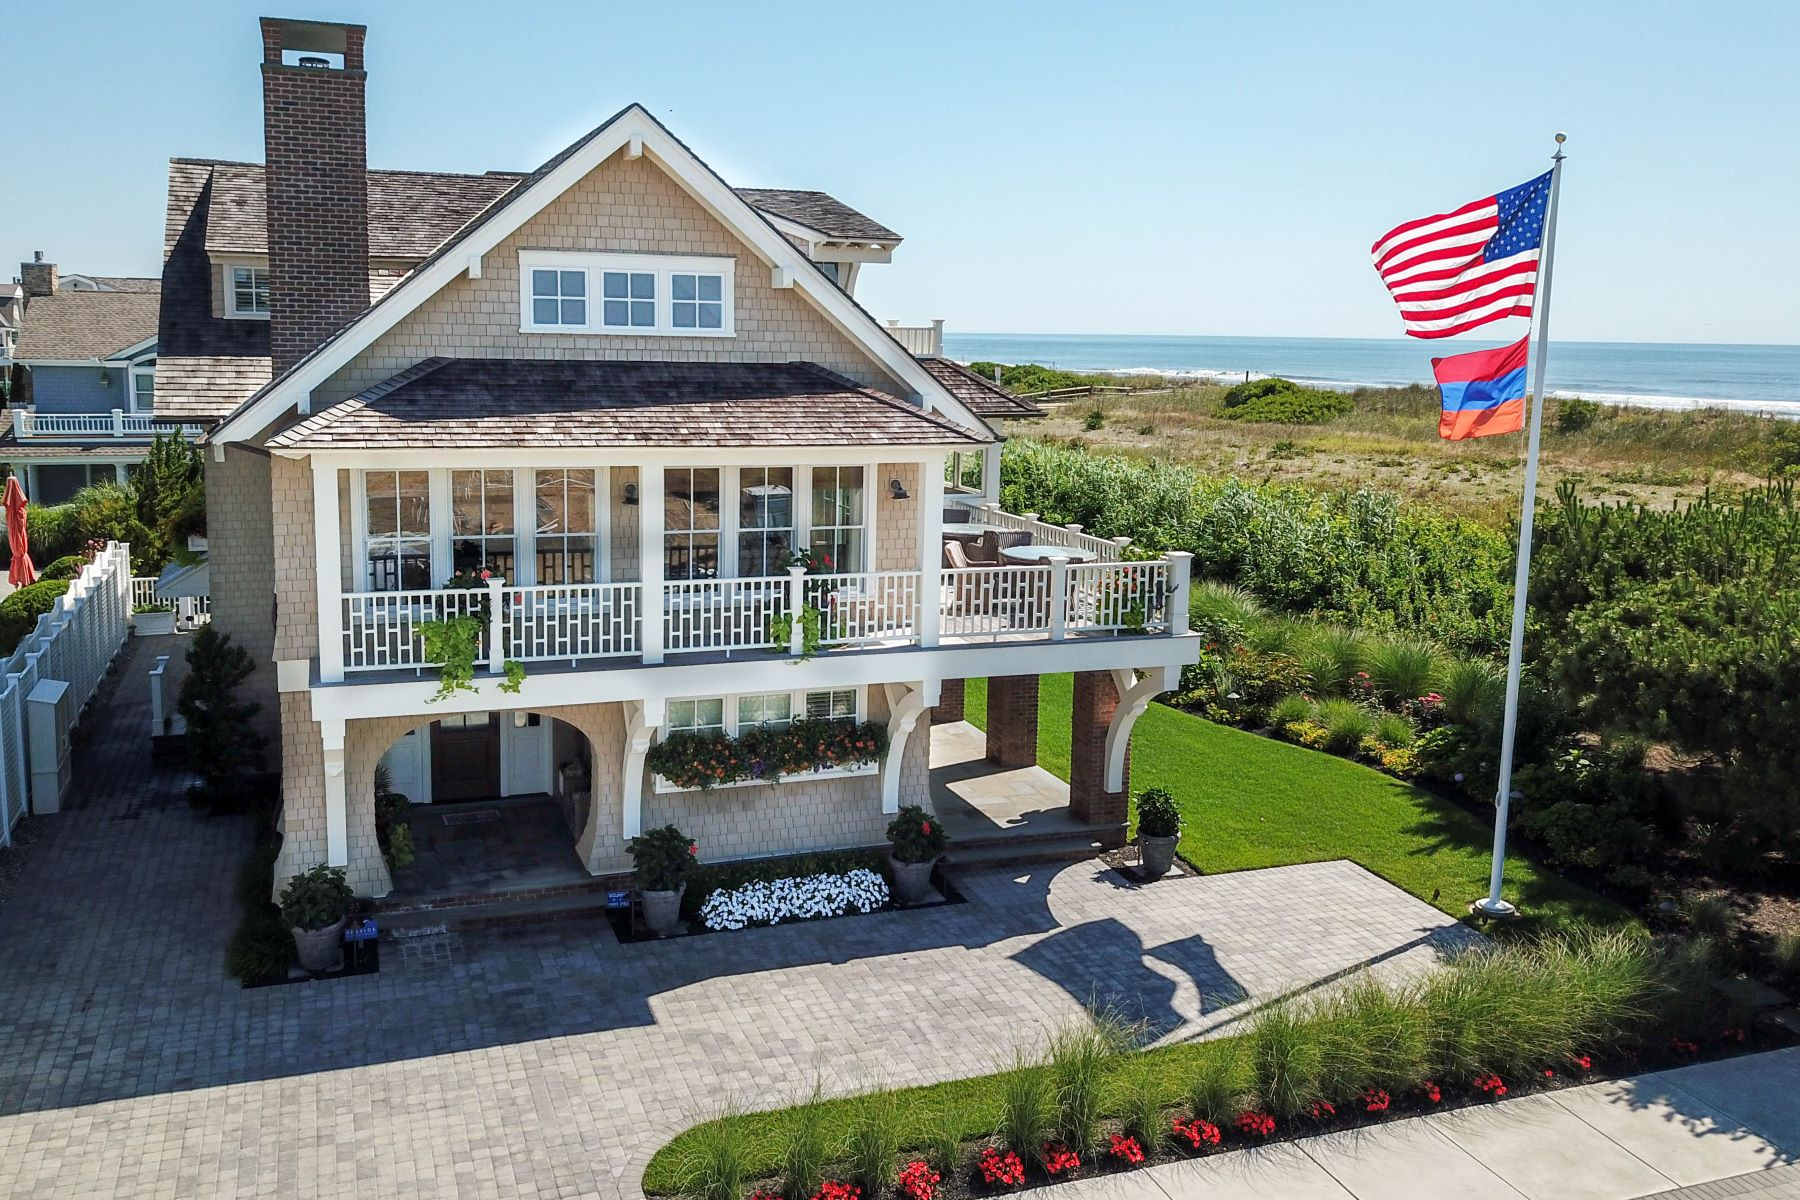 Single Family Home for Sale at Captivating Oceanfront 93 E 17th Street, Avalon, New Jersey 08202 United States